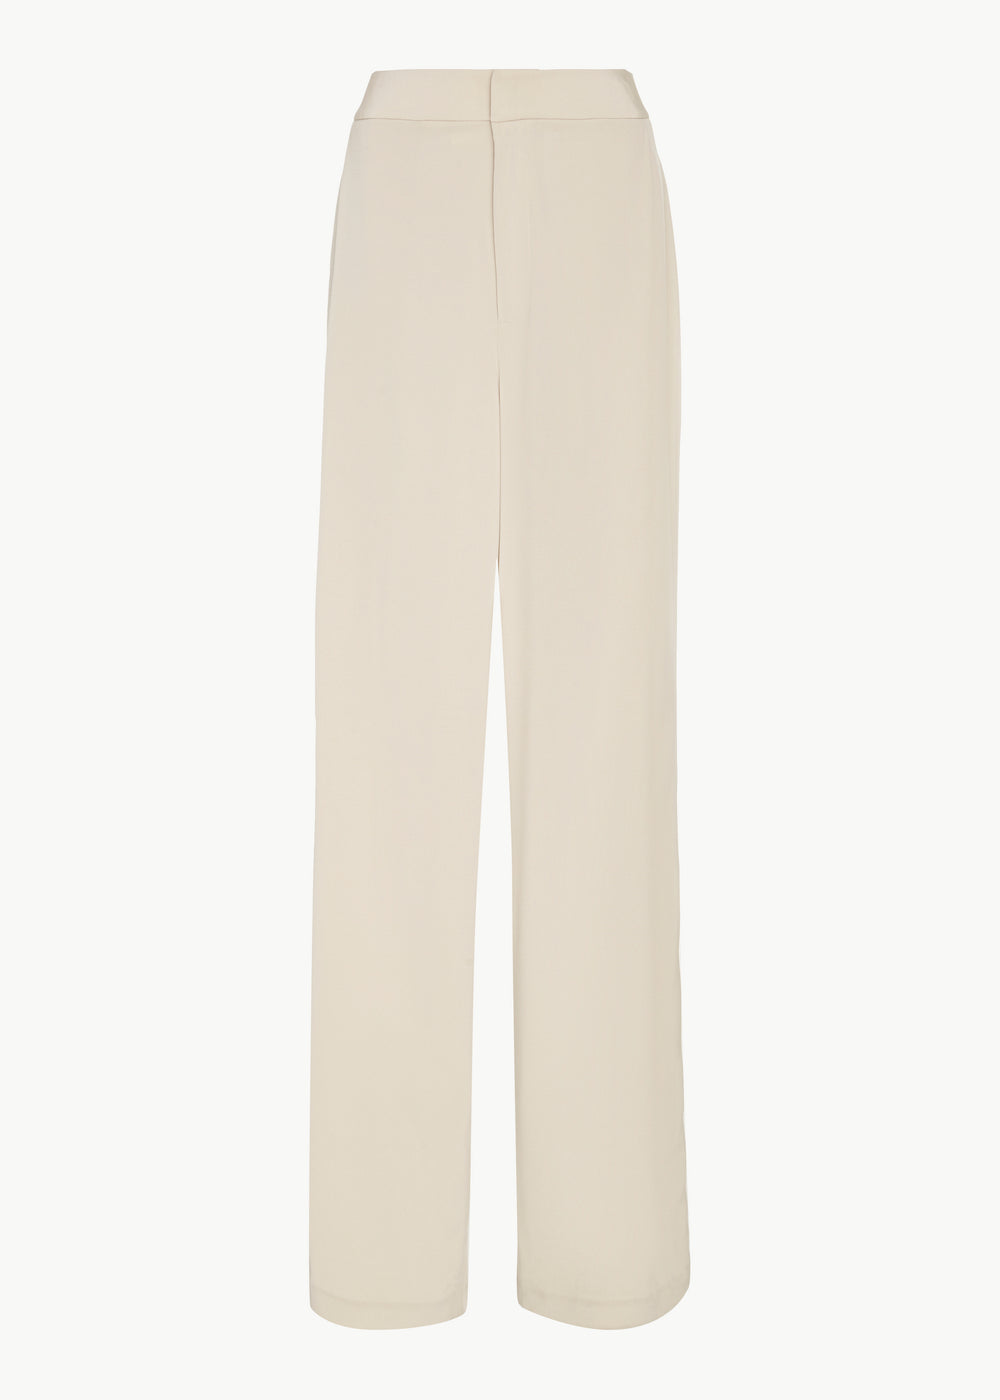 Relaxed Trouser in Stretch Crepe - Champagne - CO